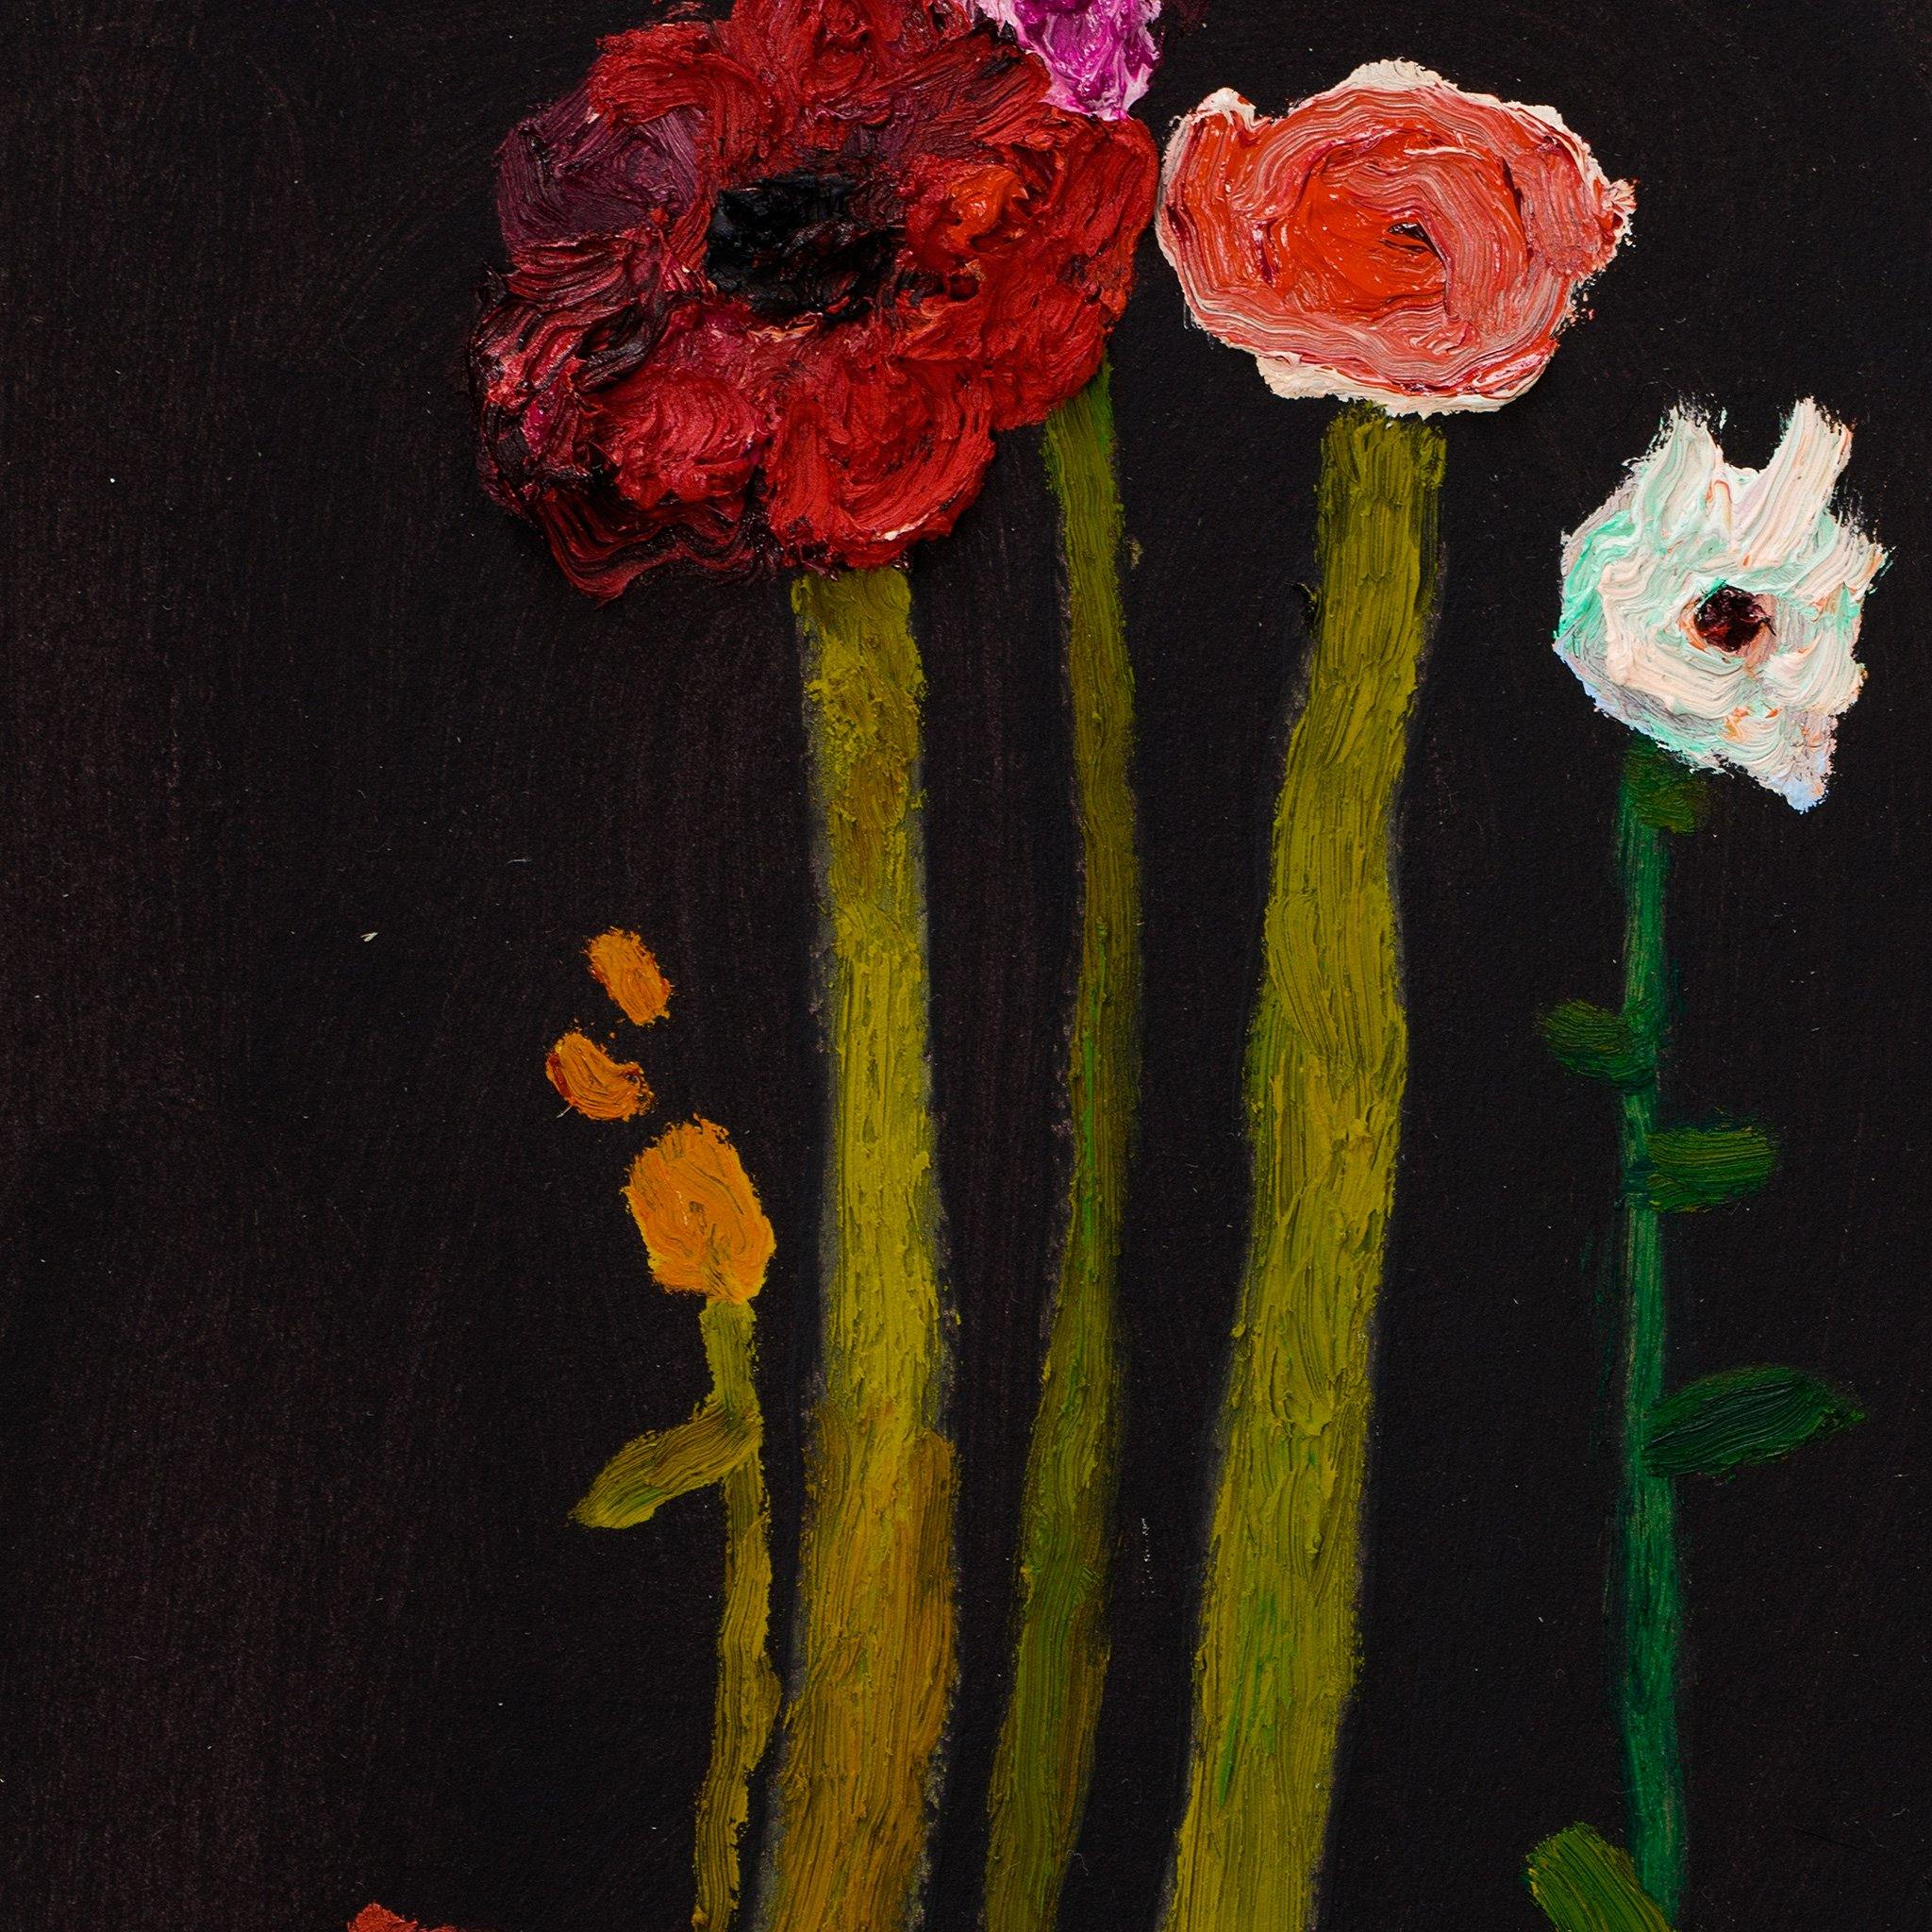 Flower Sticks, Original Work on Paper  by  Flower Sticks Tappan